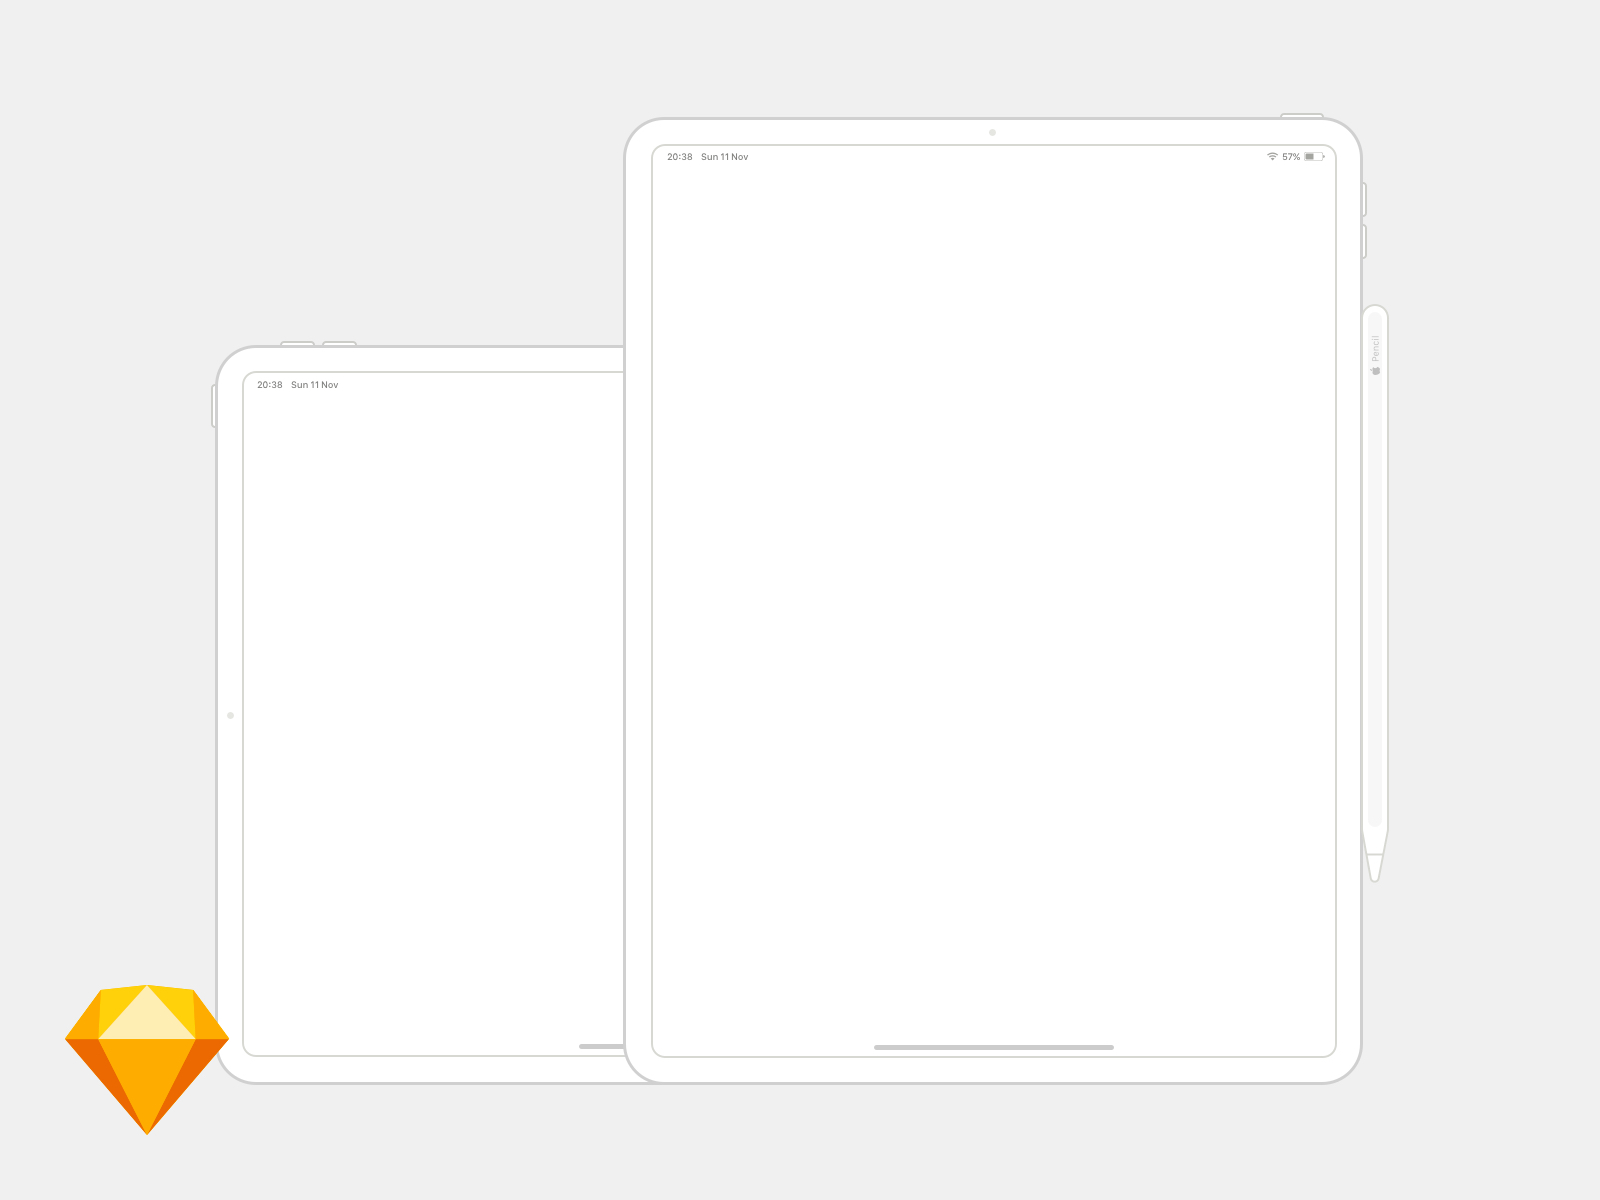 iPad Pro 12.9 Wireframe Mockup - It's an 12.9 inch model at 1/3 of the original pixel resolution for a smoother transition to real pixels. Includes an Apple Pencil. Available in landscape and portrait. Its all symbols so you can configure it however you'd like.